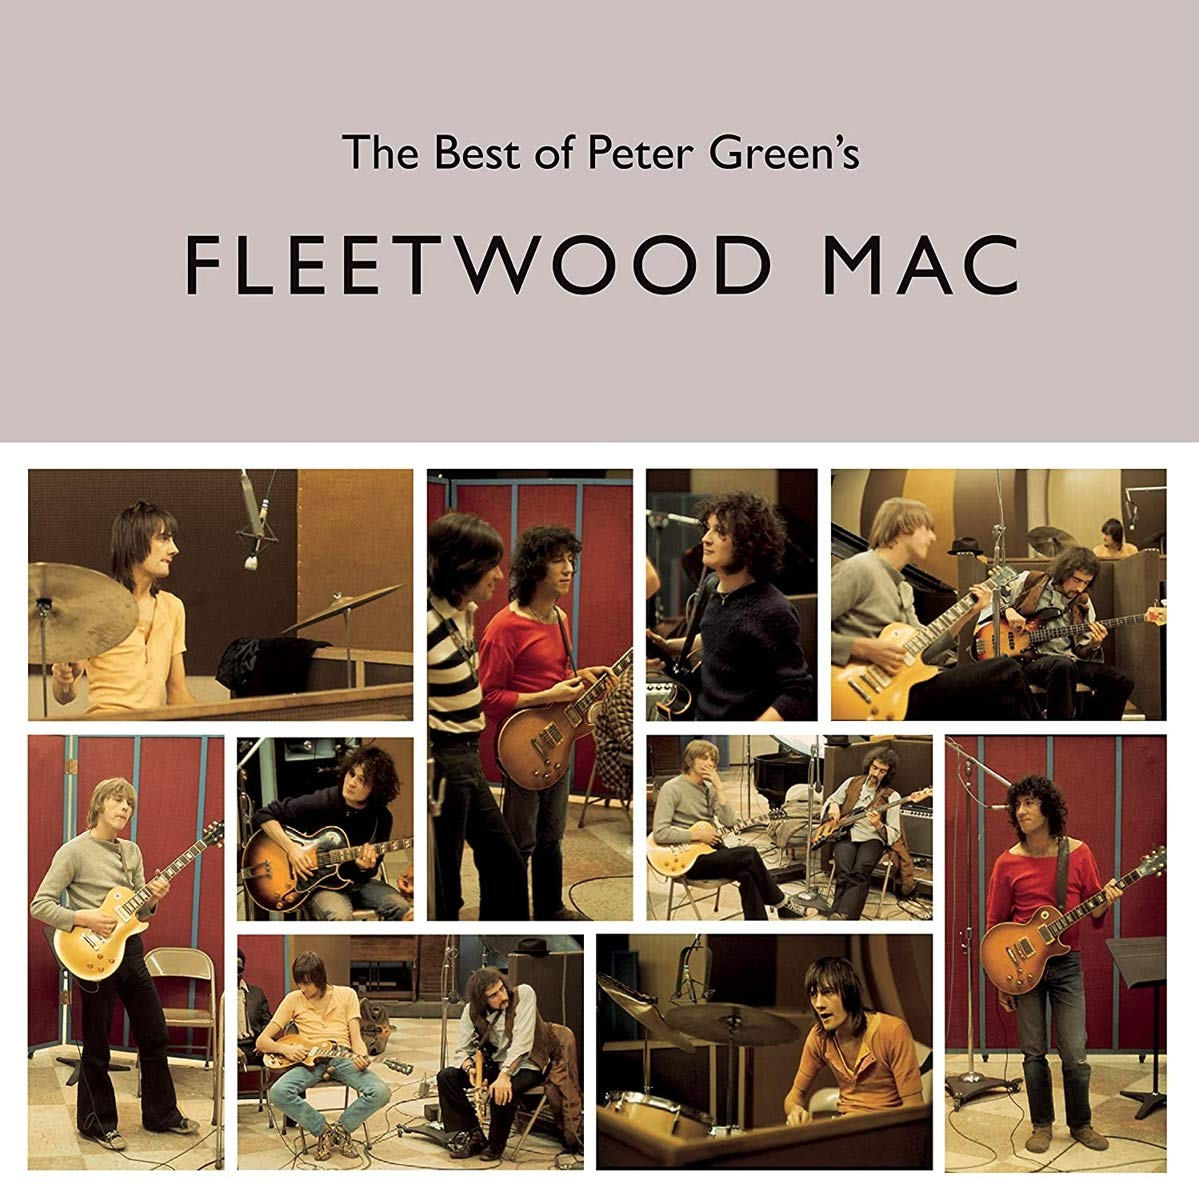 Best of Peter Green's Fleetwood Mac